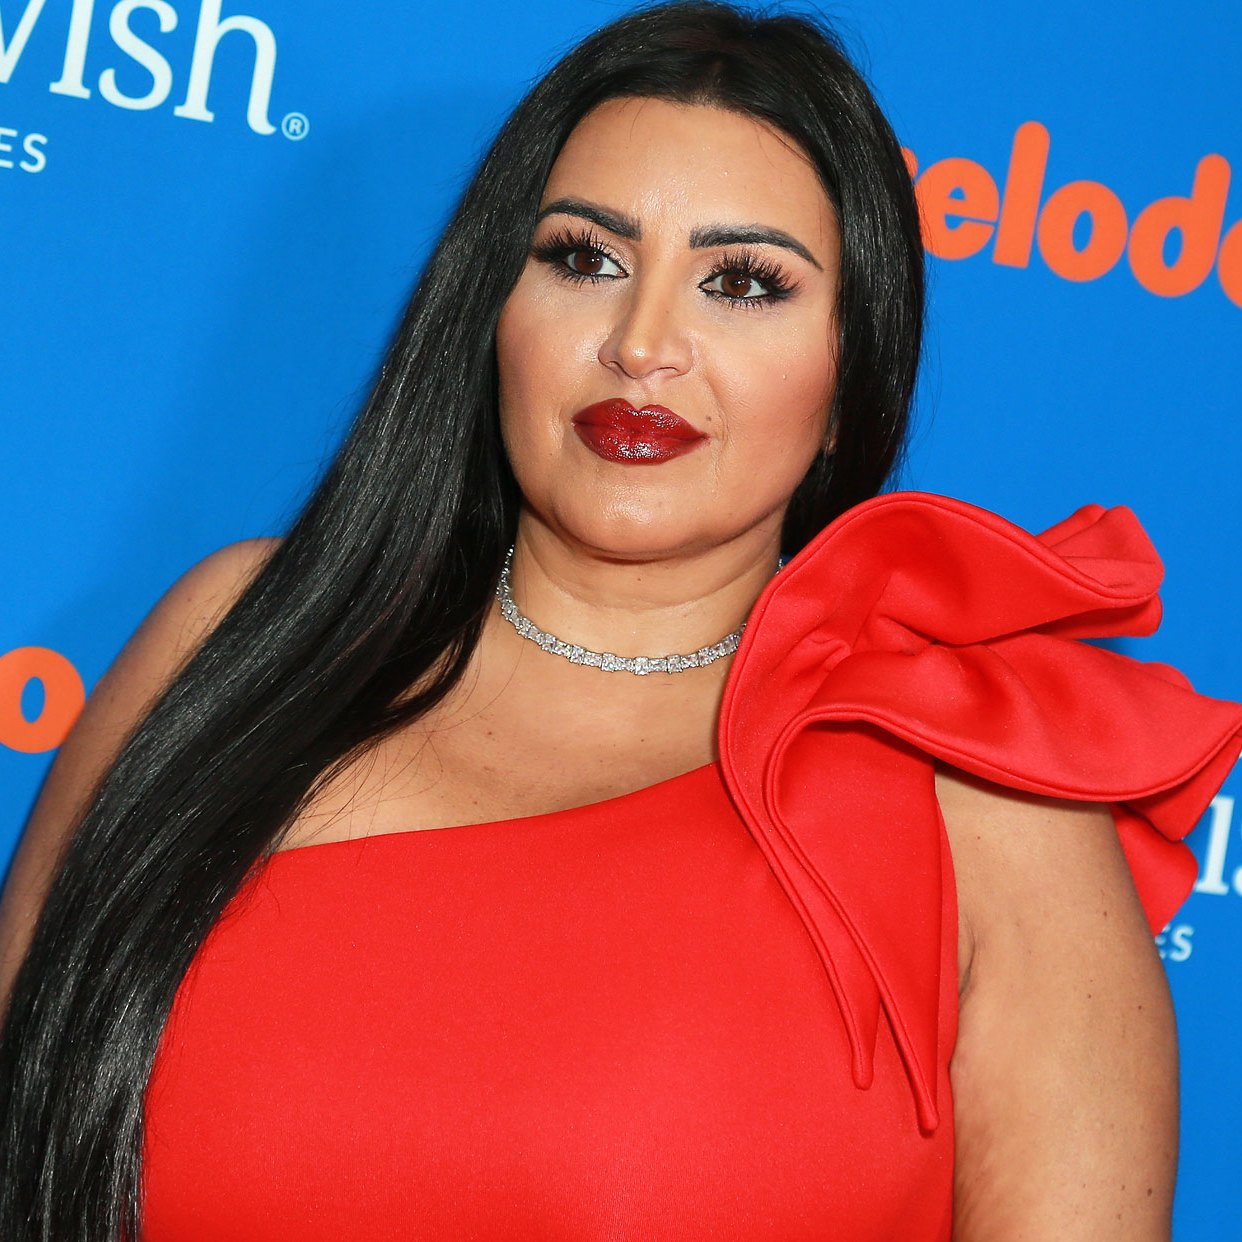 Shahs of Sunset Star MJ Javid in ICU After Giving Birth Hasn't Held Her Baby